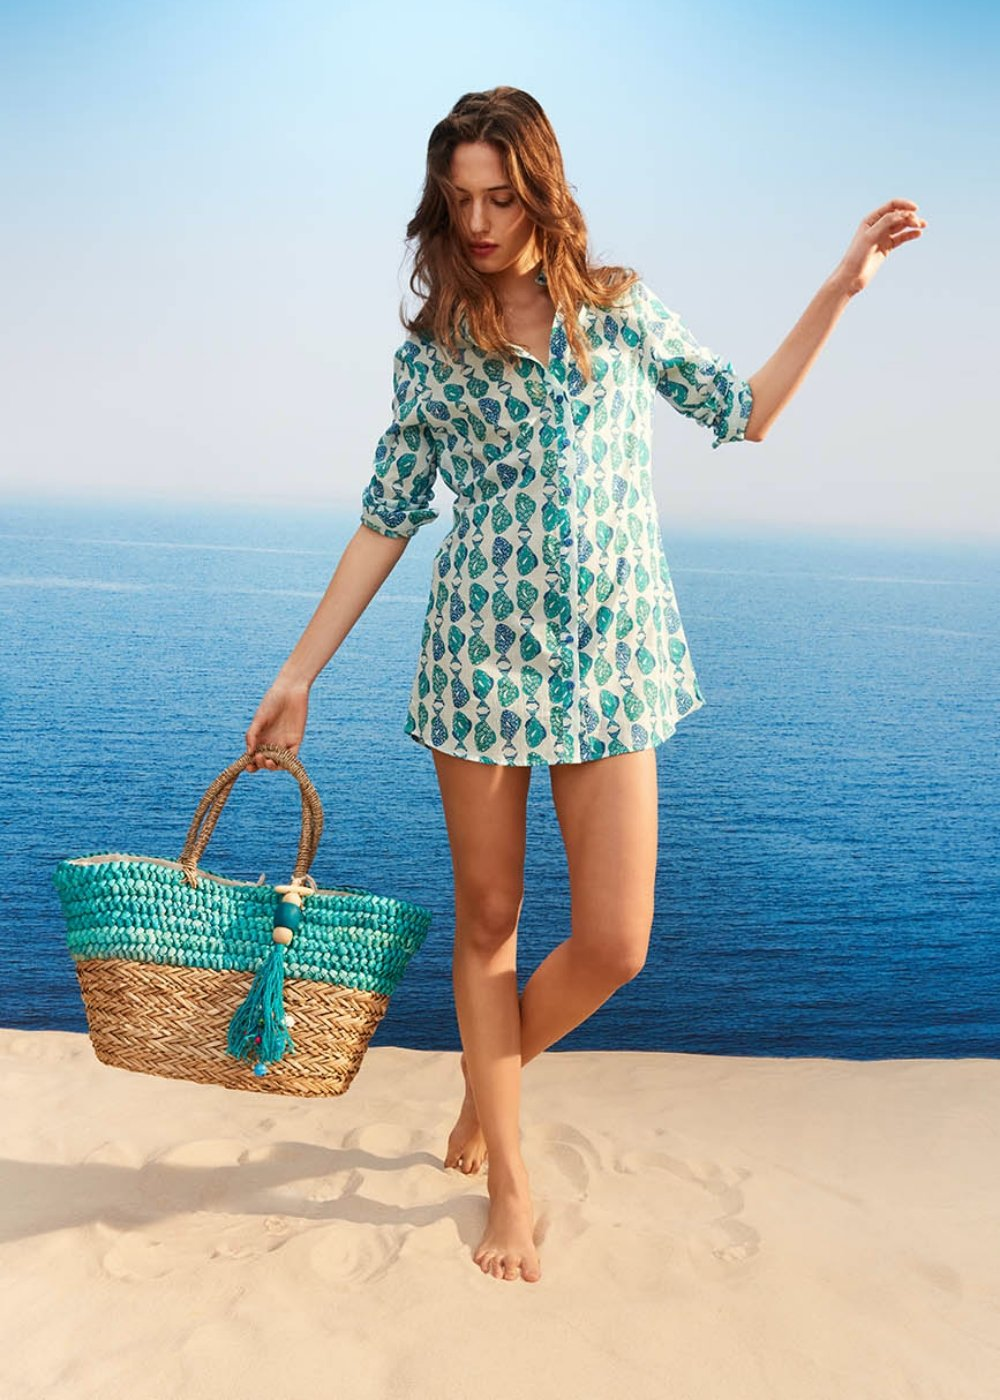 Bengy beach basket bag with turquoise details - Turquoise - Woman